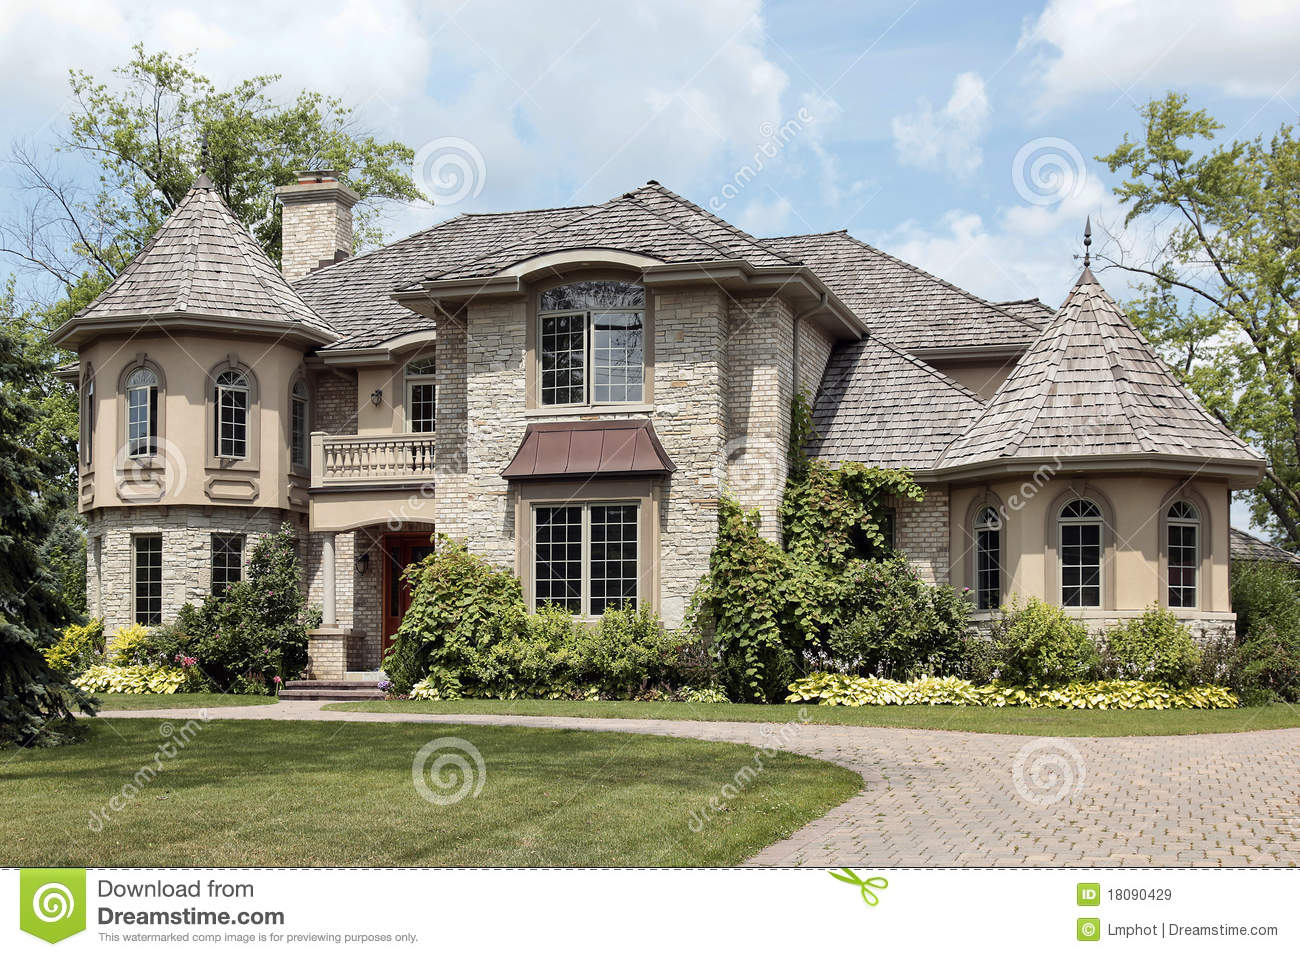 Luxury stone home with turret royalty free stock images for Maisons contemporaines de luxe